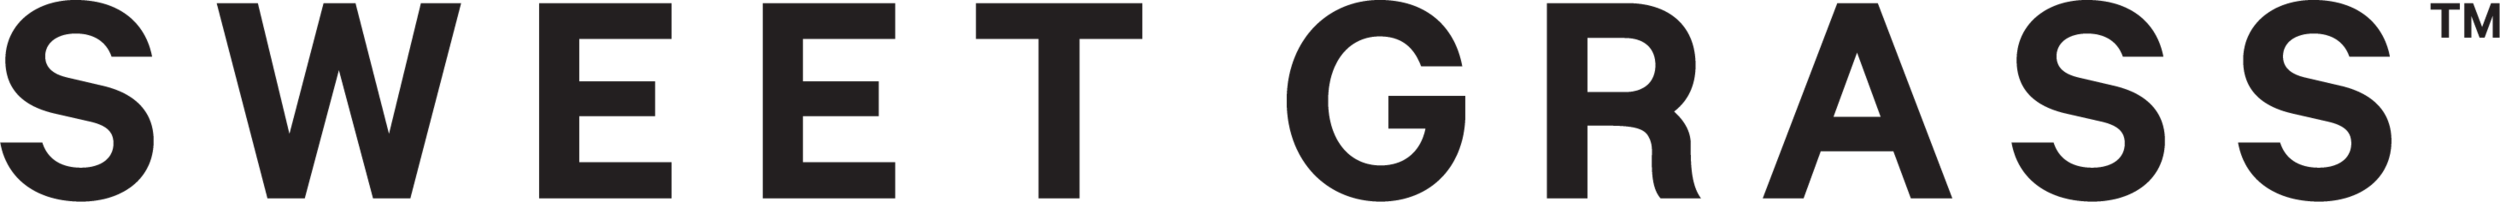 SG_logo_small_TM (1).png